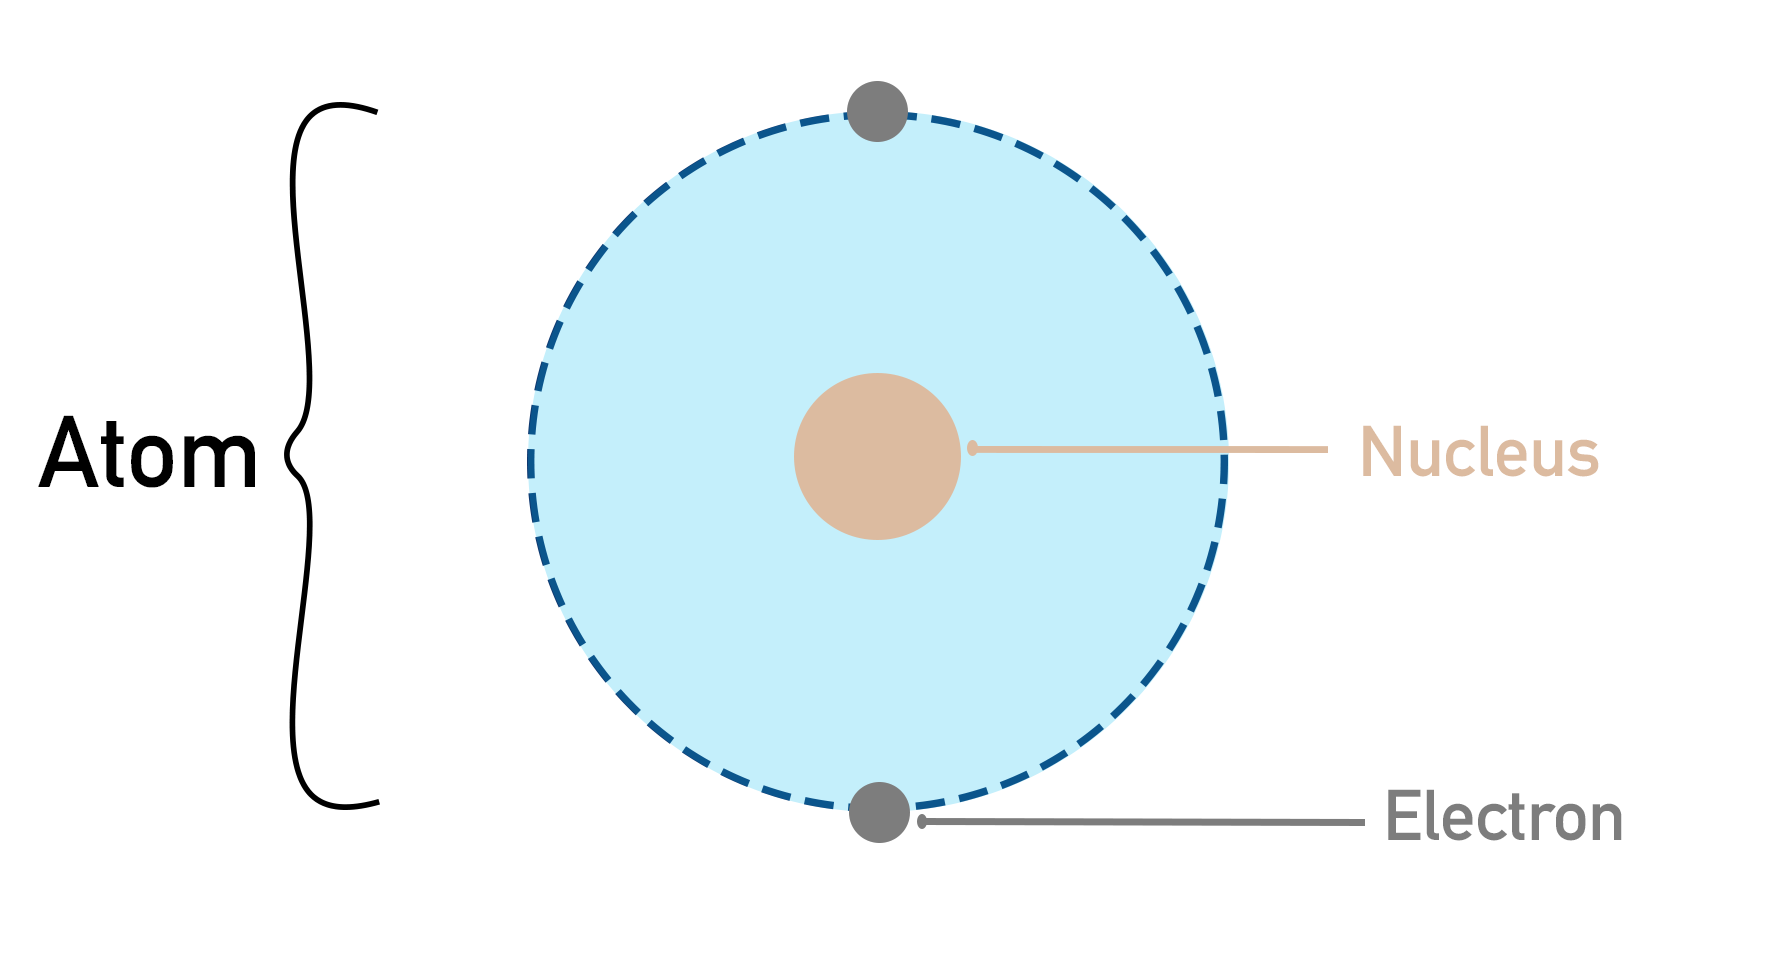 nuclear model of an atom, showing nucleus and electrons